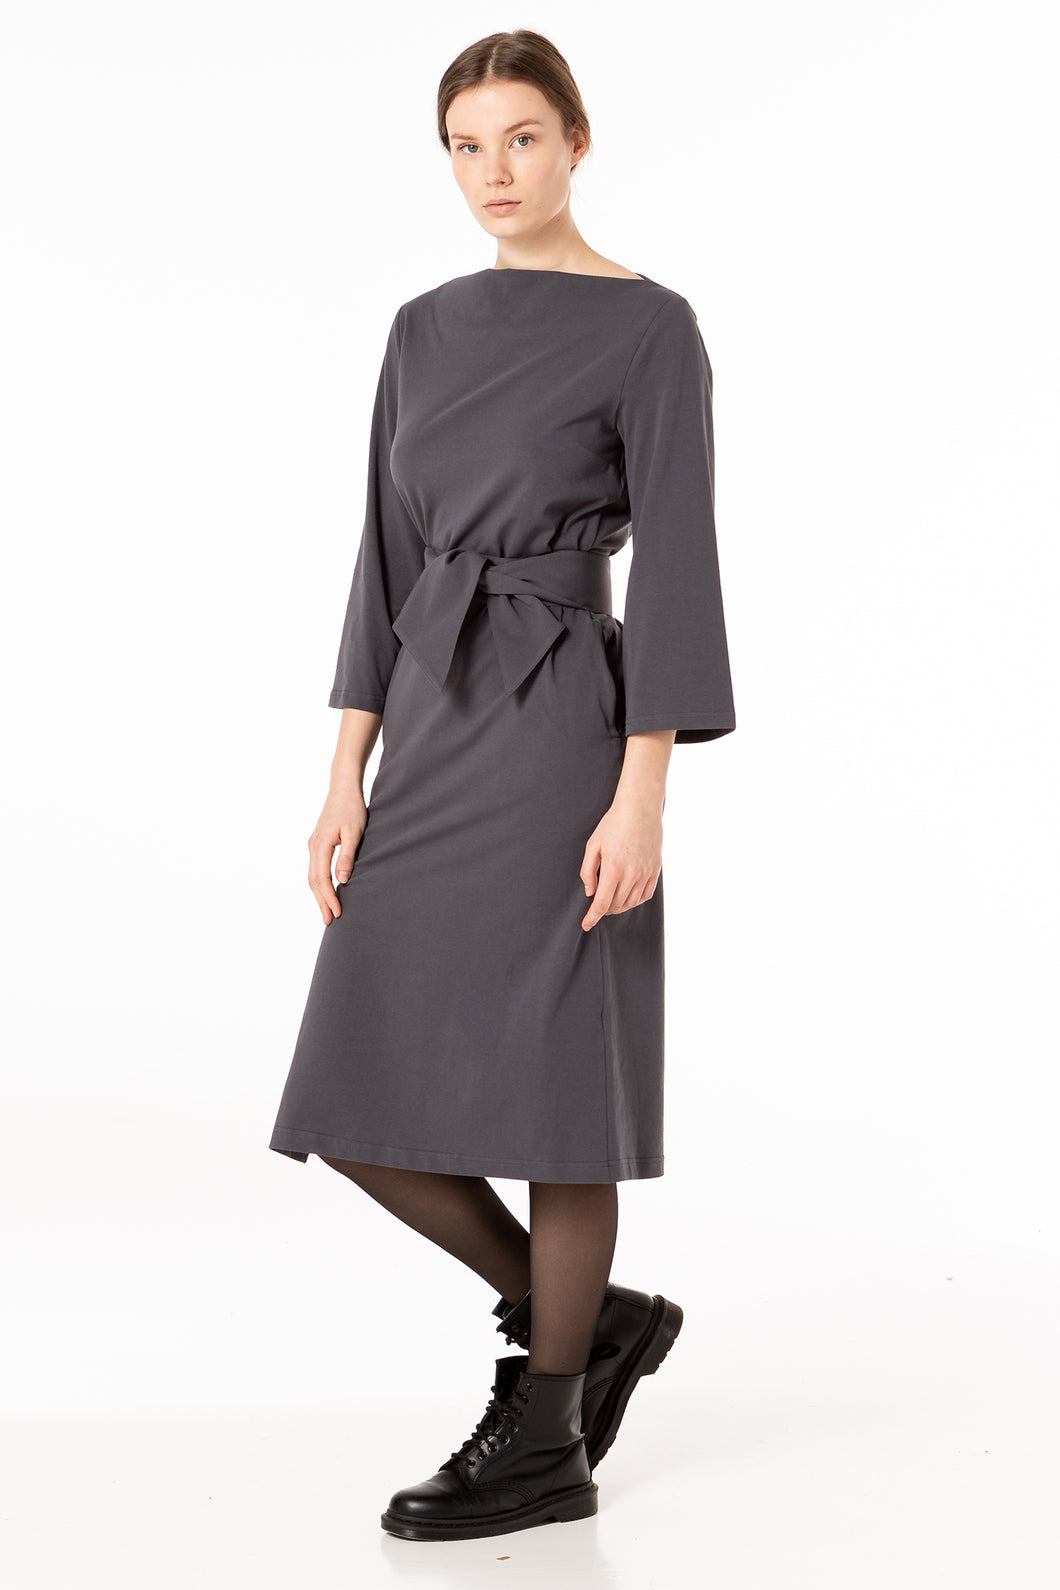 Deep grey dress to impress